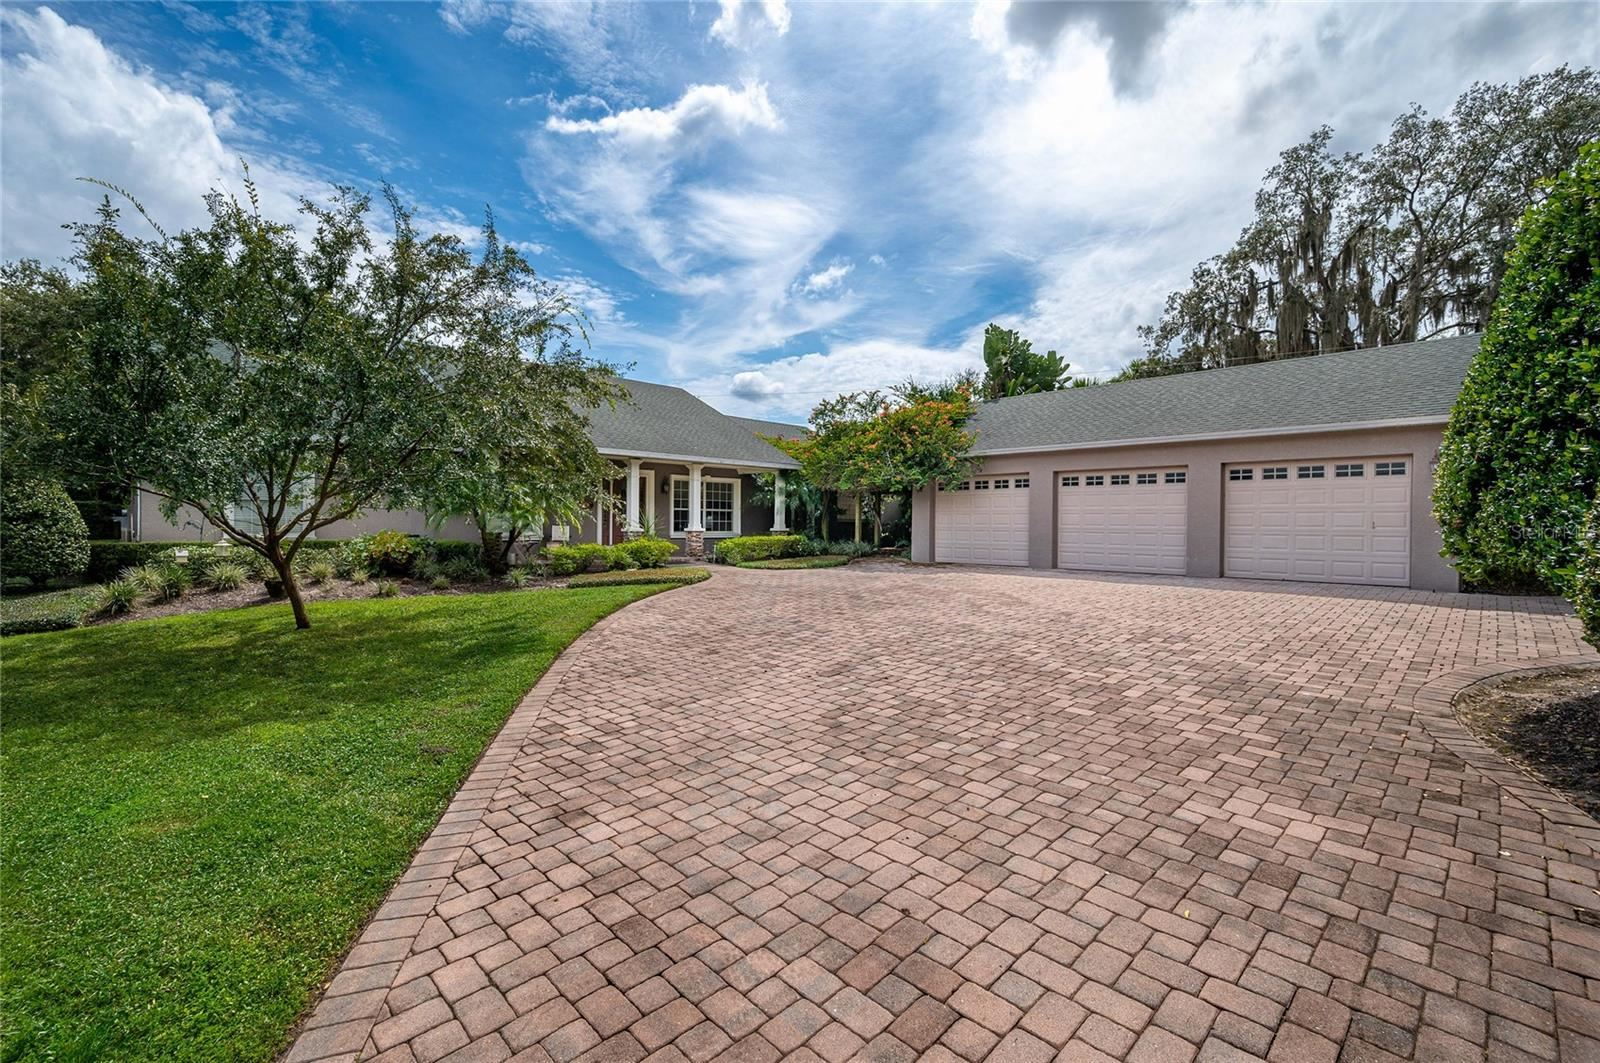 Photo of 8312 W LAKE MARION ROAD, HAINES CITY, FL 33844 (MLS # P4917544)